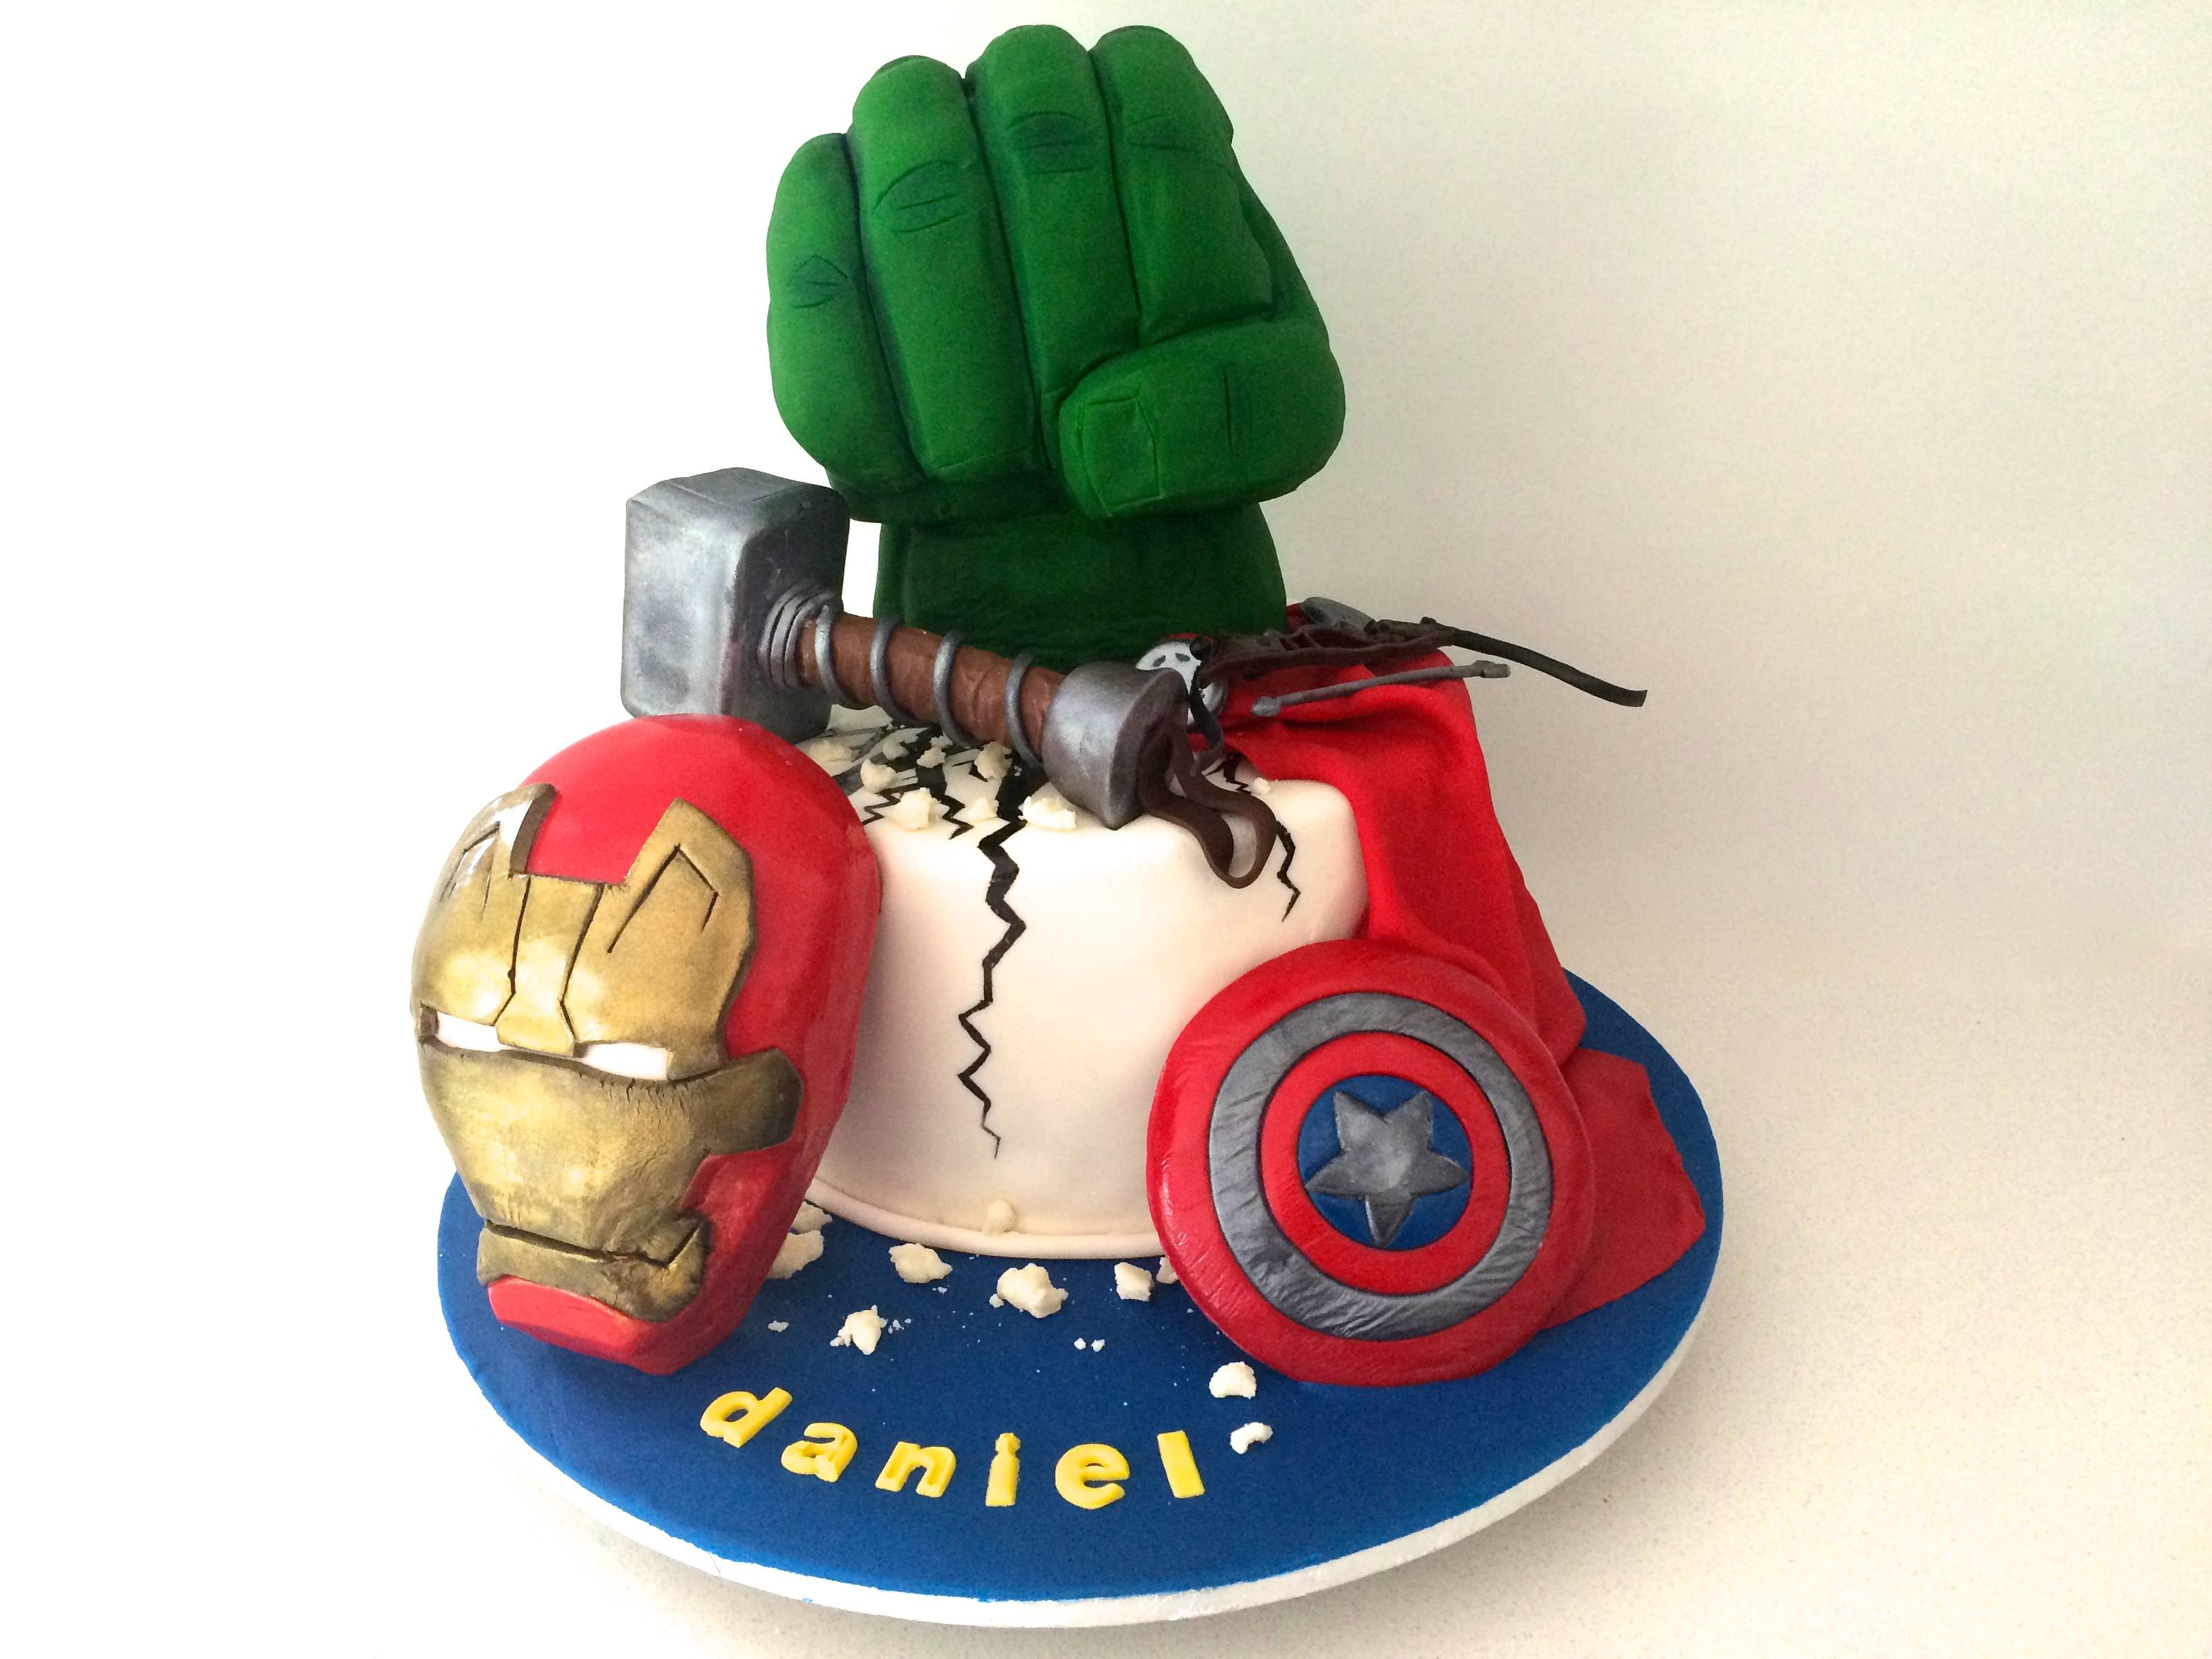 HowToCookThat Cakes Dessert Chocolate Marvel Avengers Cake